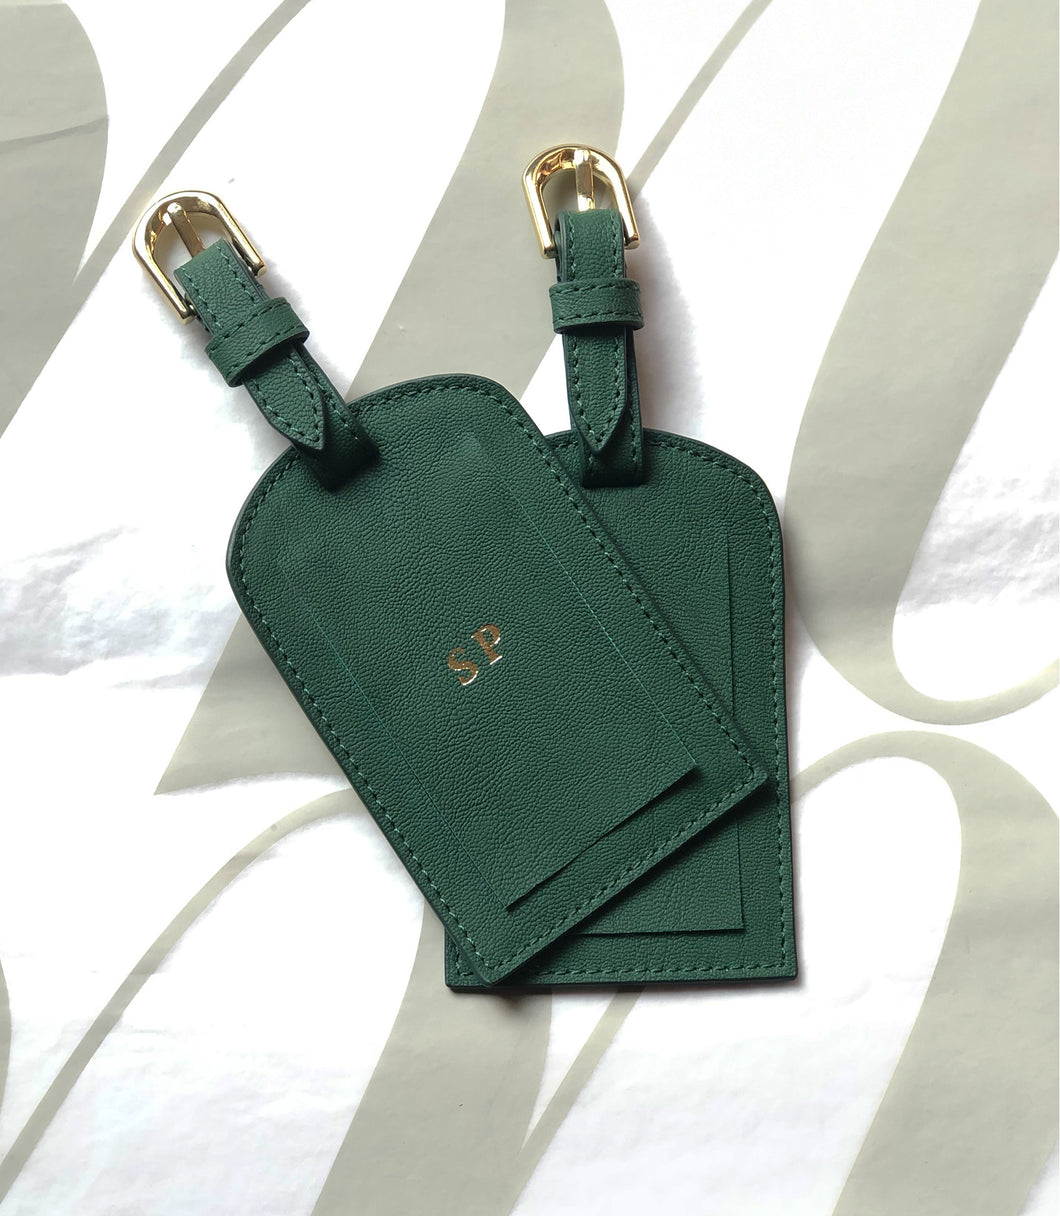 Vegan Leather Luggage Tag Set - Grainy Green